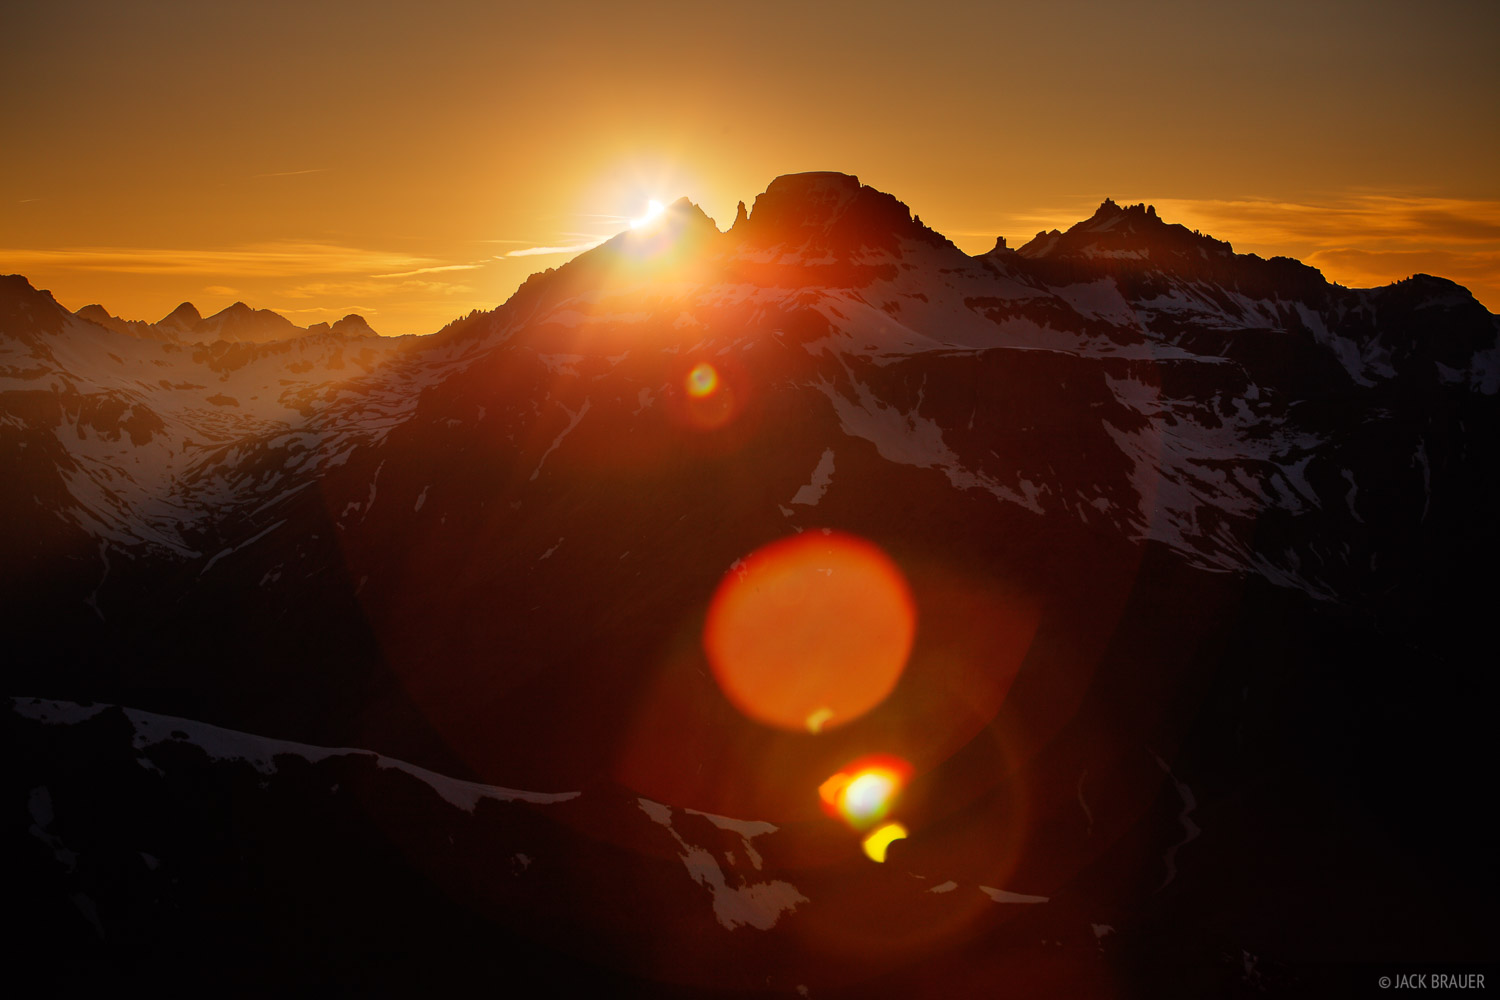 solar eclipse, Potosi Peak, Mt. Sneffels, San Juan Mountains, Colorado, sunset, photo